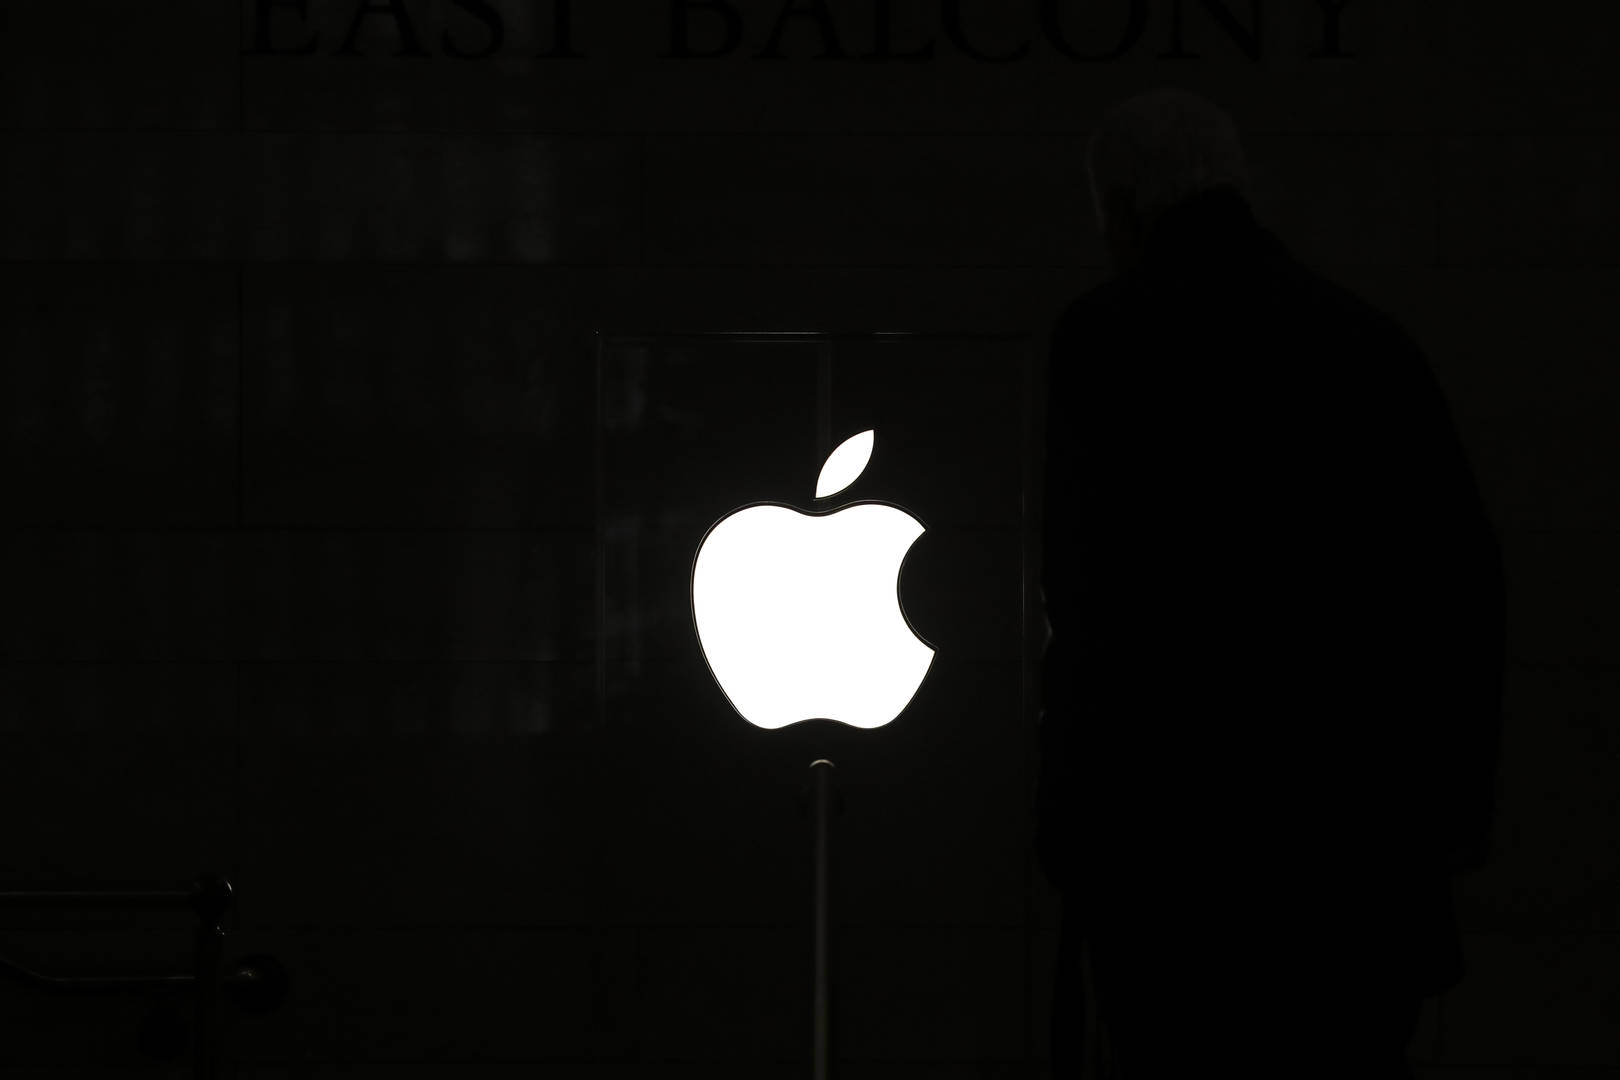 International Business: Apple Card to bar digital currencies